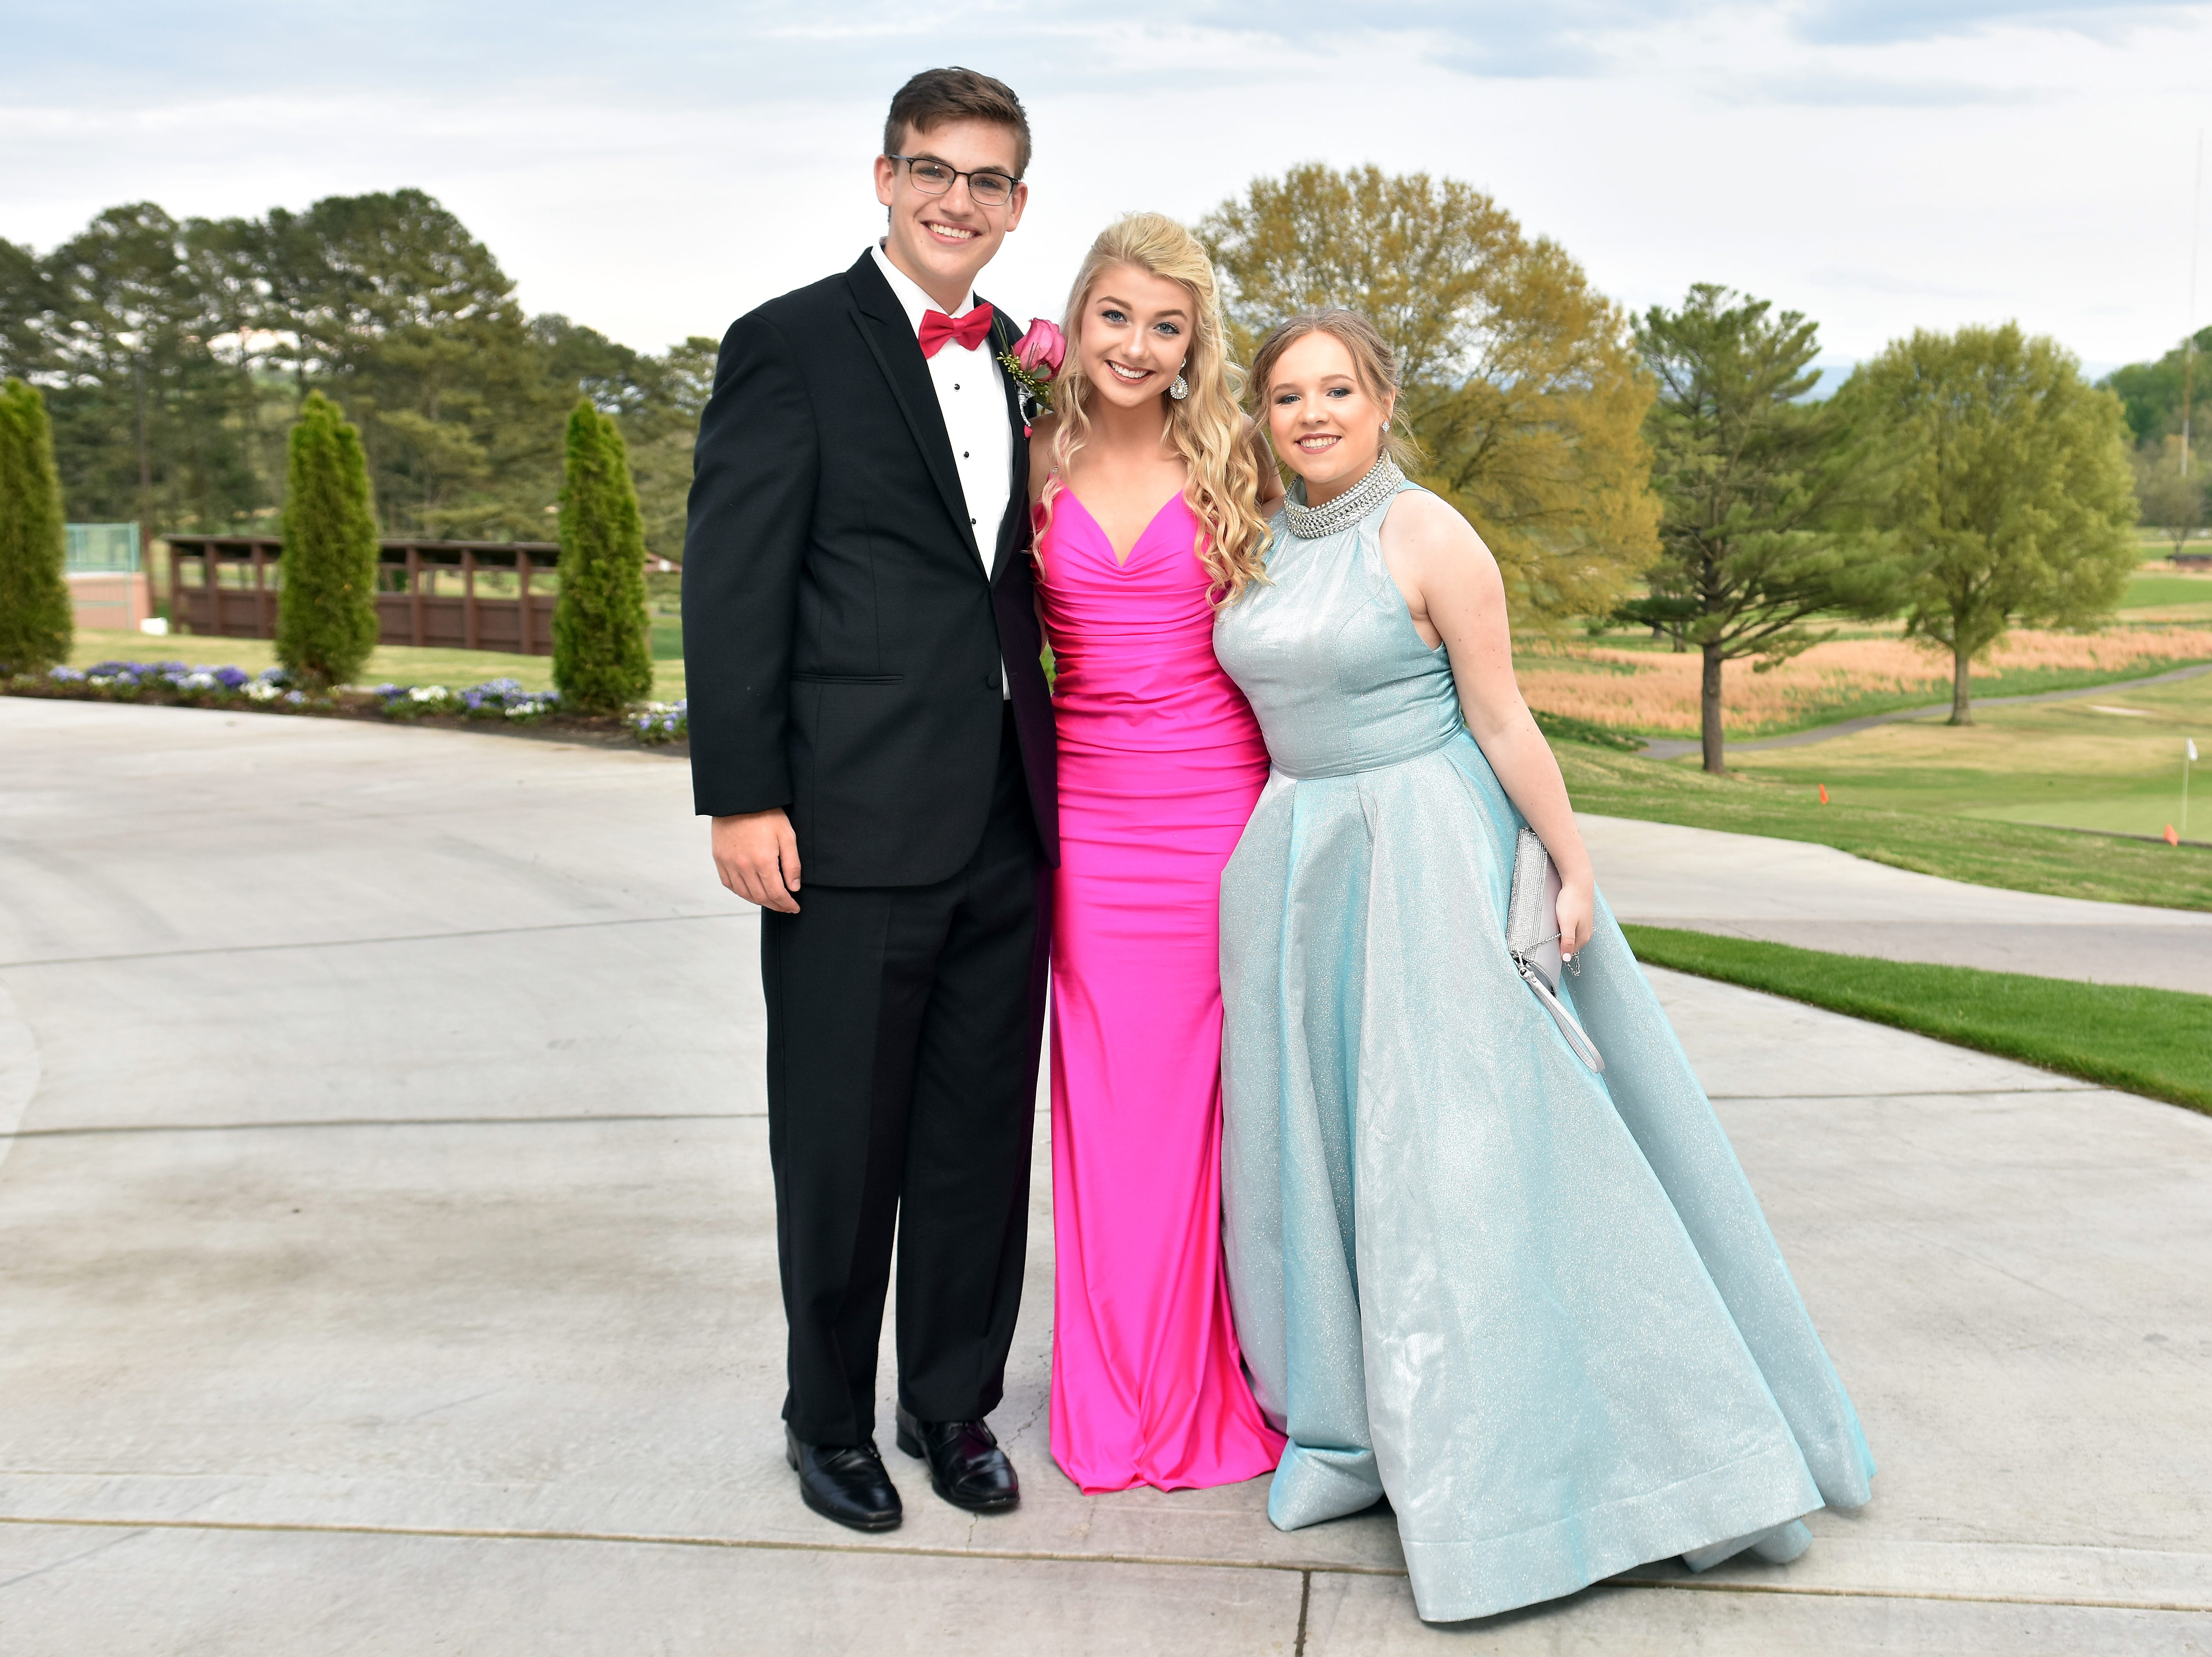 Scenes from the Grace Christian Academy prom at Holston Hills Country Club on Saturday, April 13, 2019.